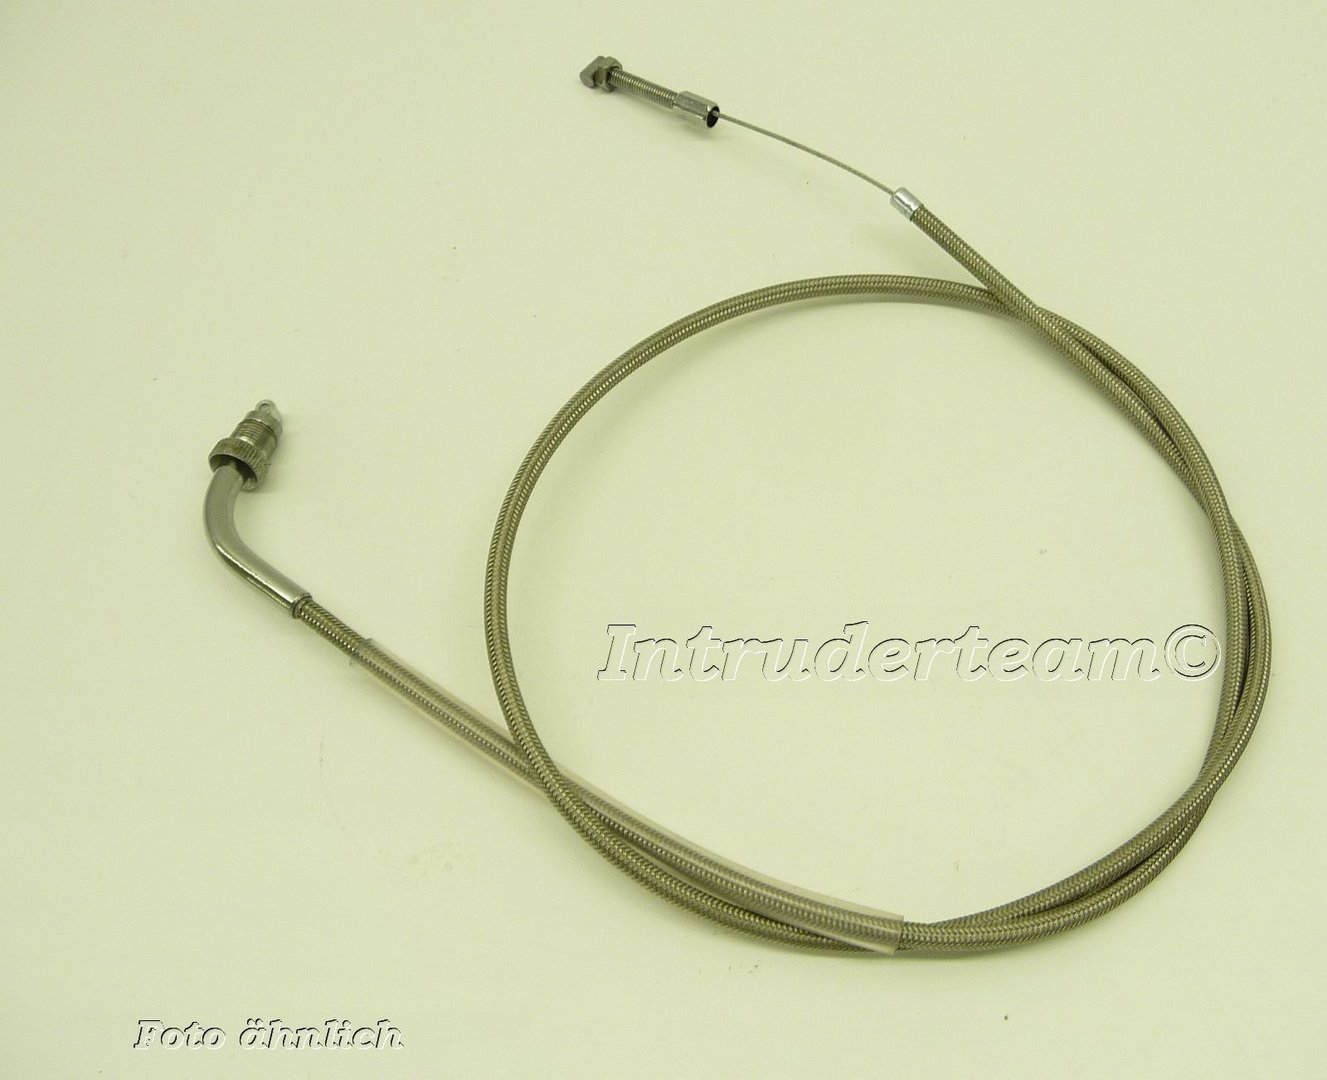 Ssteel braided Throttle cable Yamaha XVS950 V-Star 950